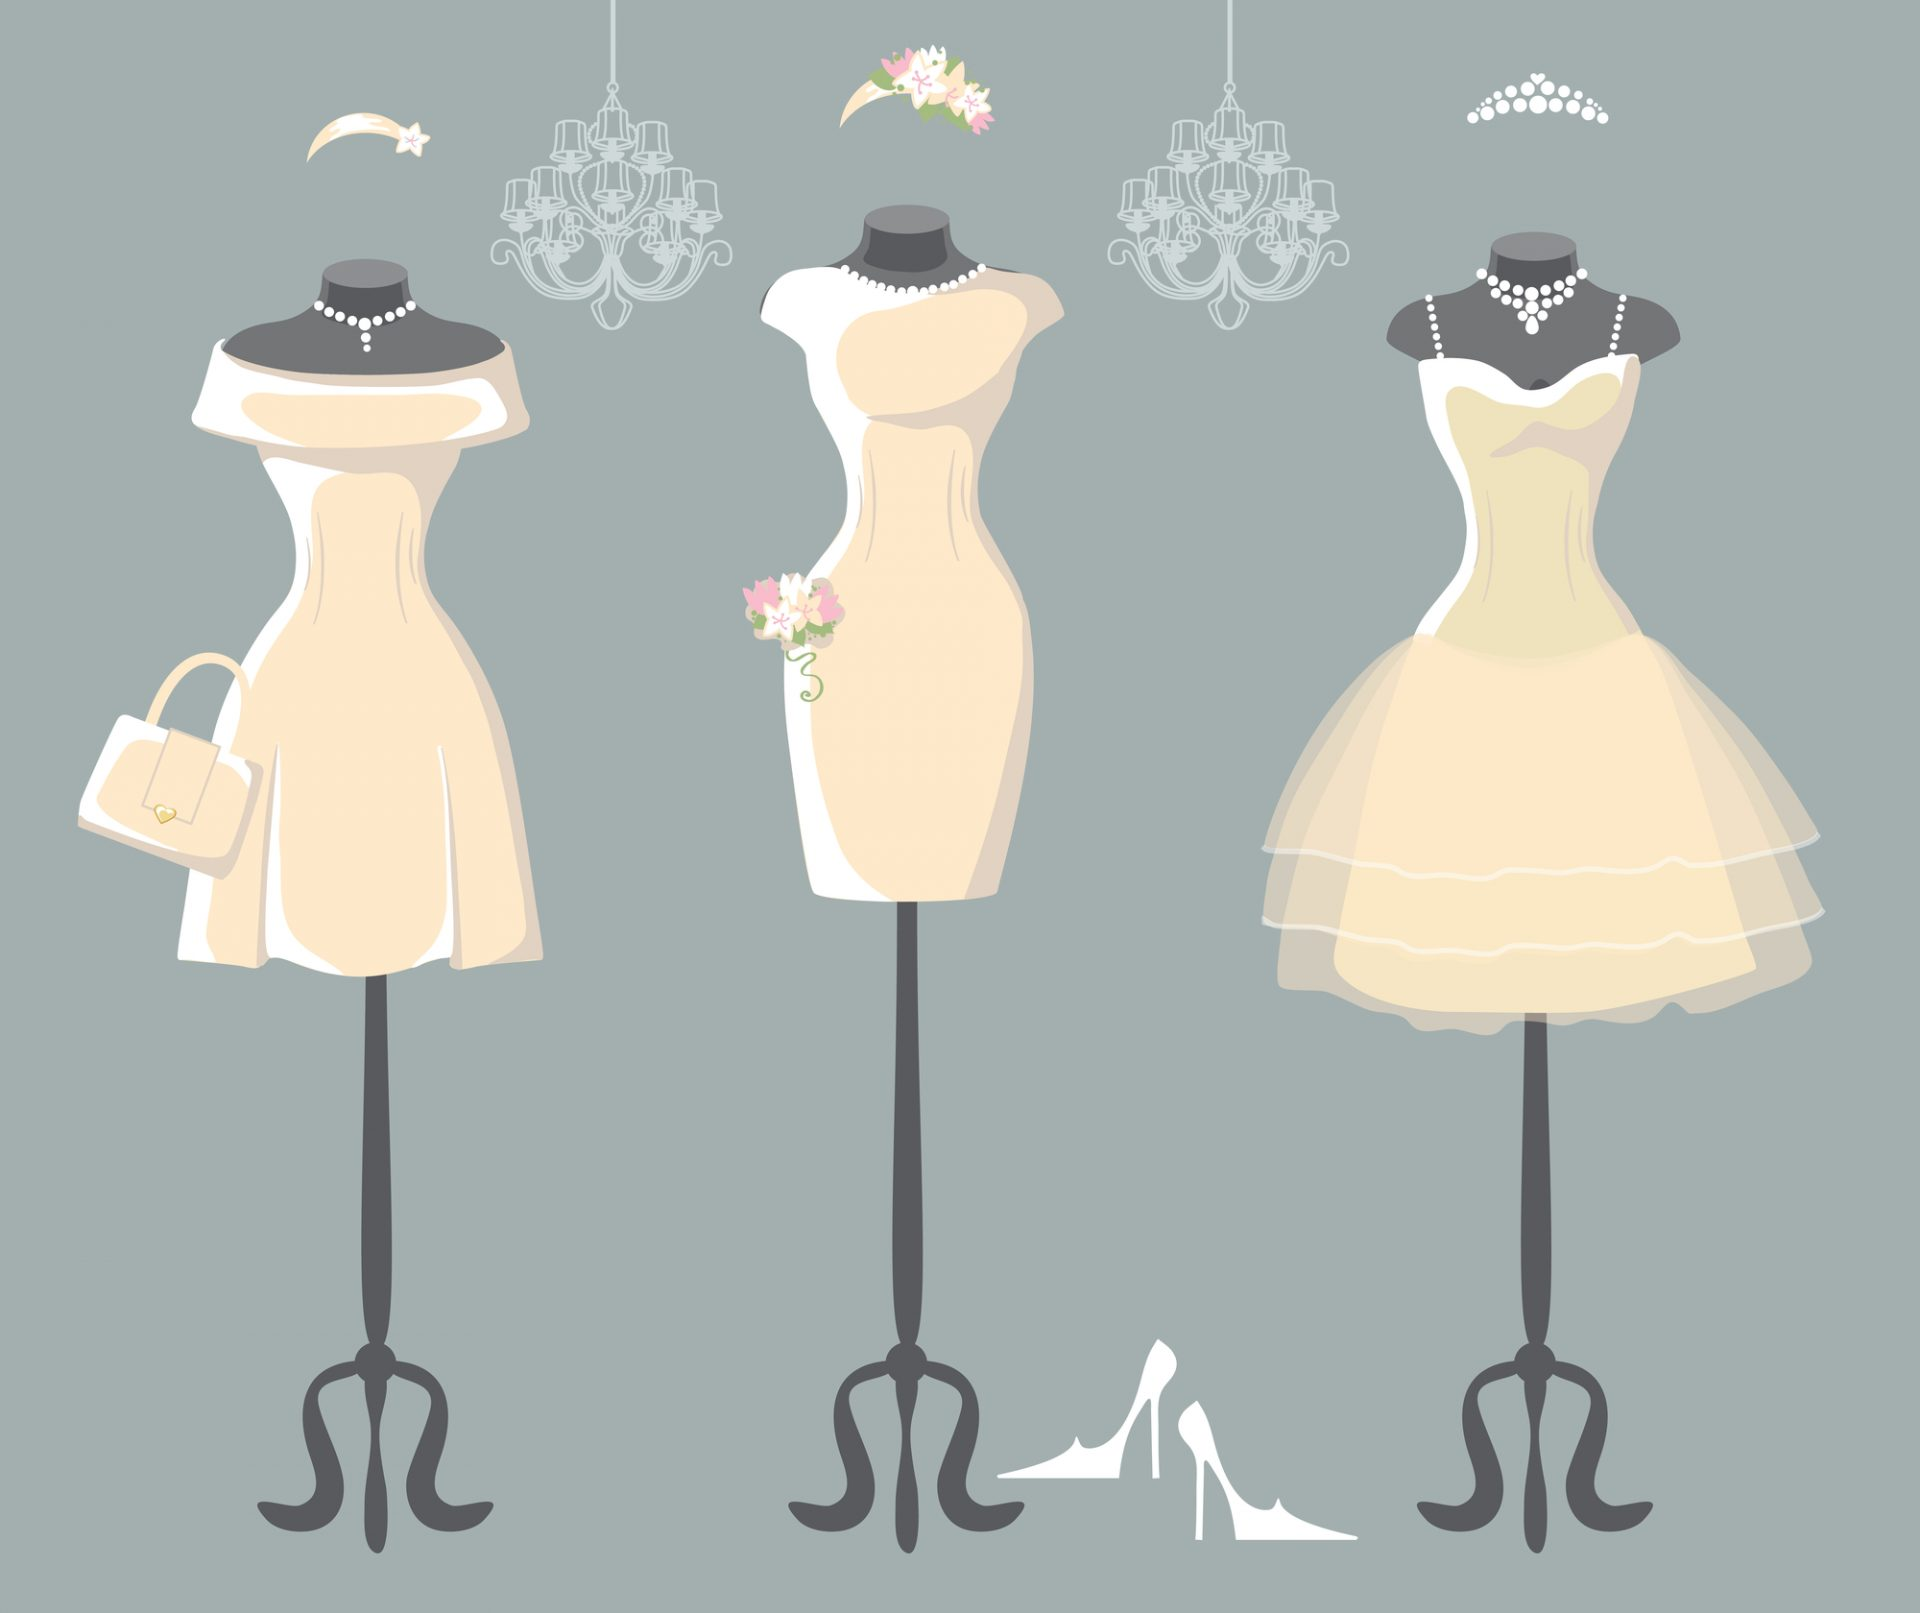 Graphic of wedding dress sketches.